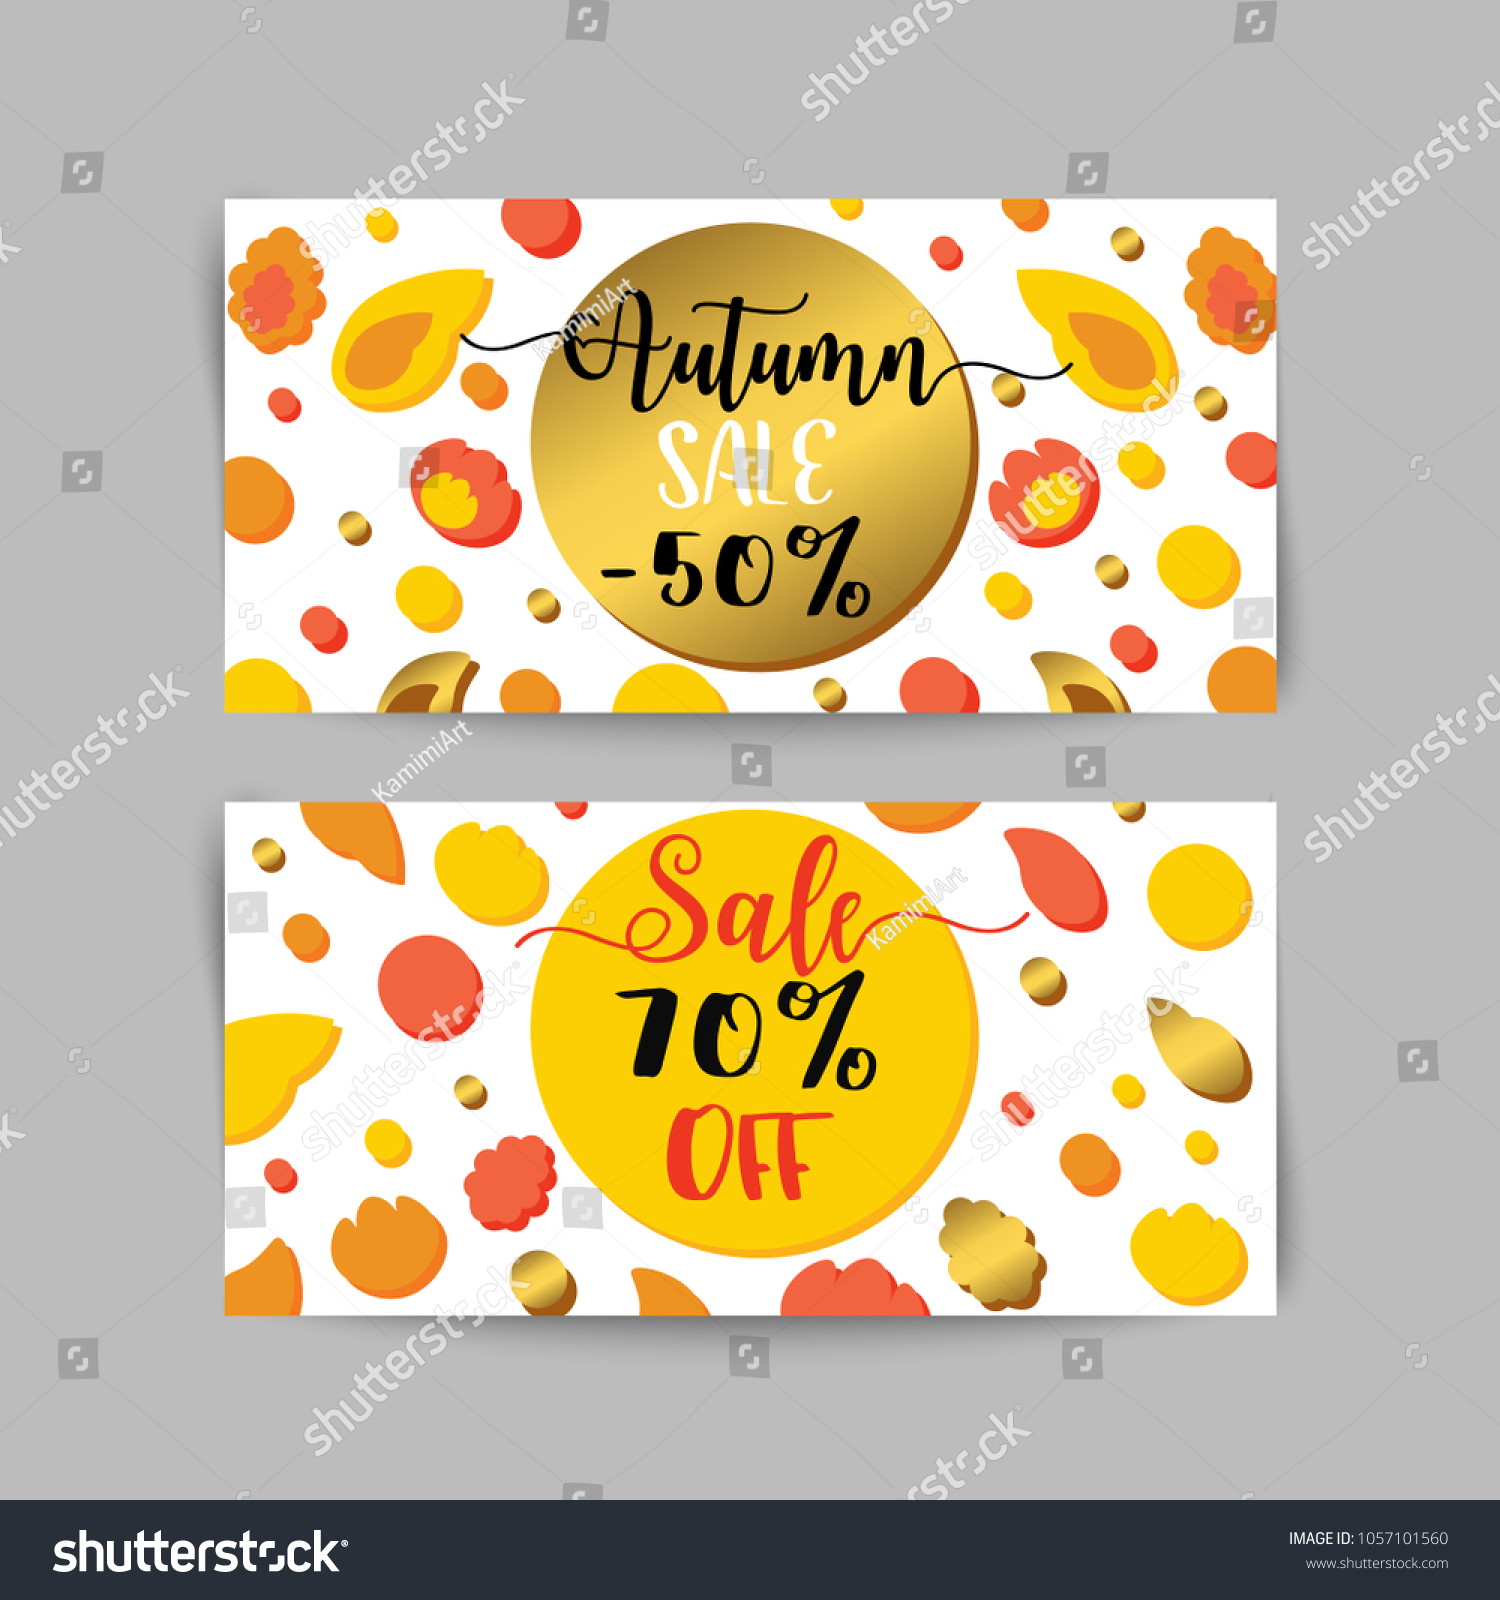 autumn sale banners ads web template stock illustration 1057101560